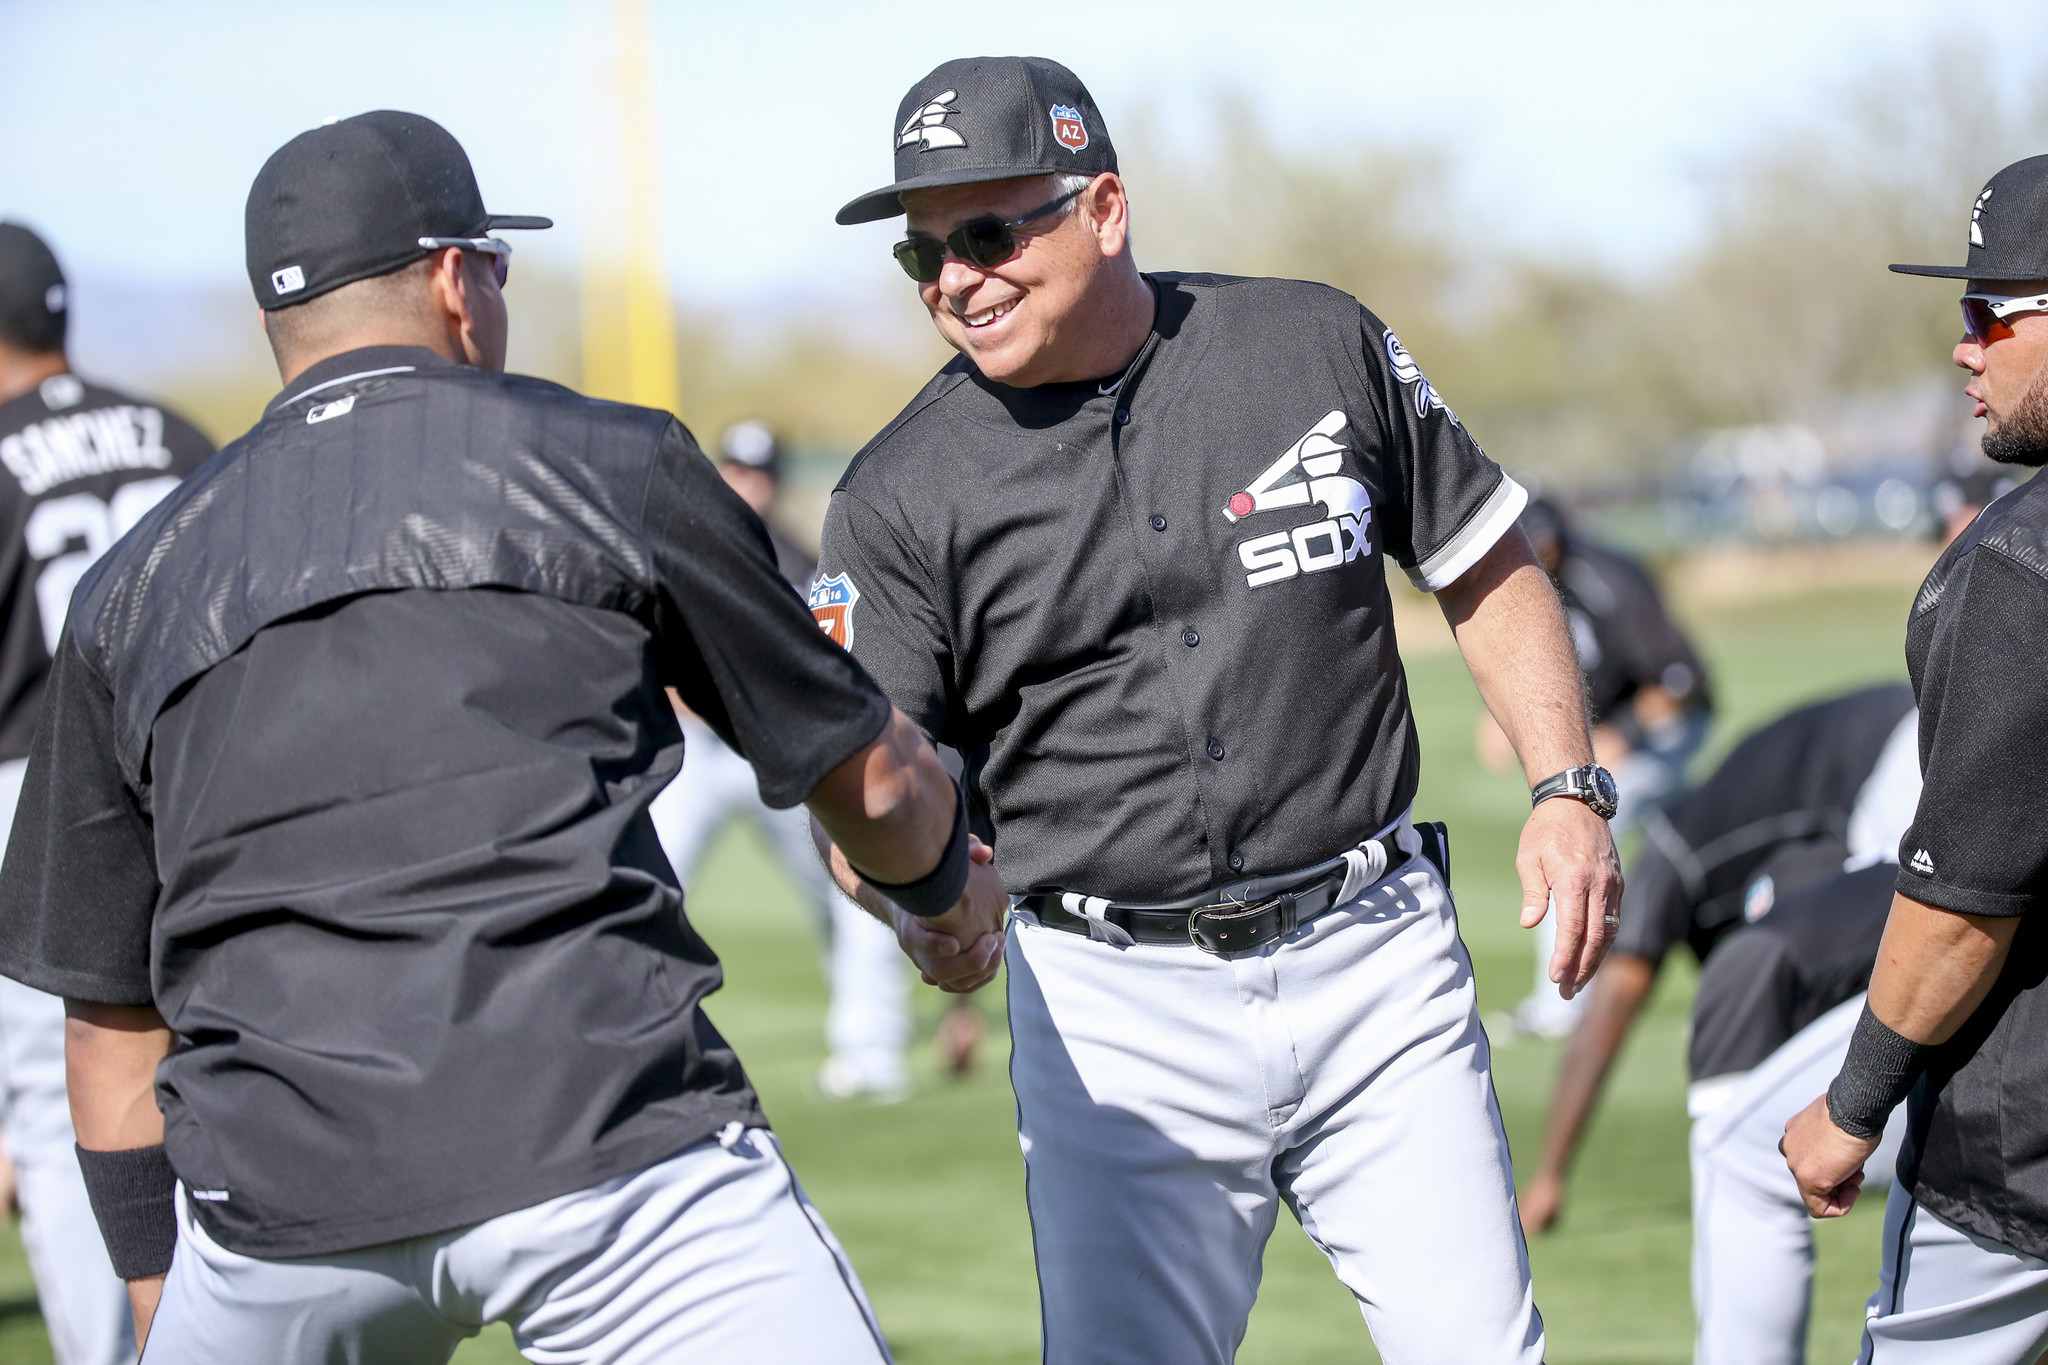 BREAKING: The White Sox Are Replacing Robin Ventura With Rick Renteria And I couldn't Be Happier